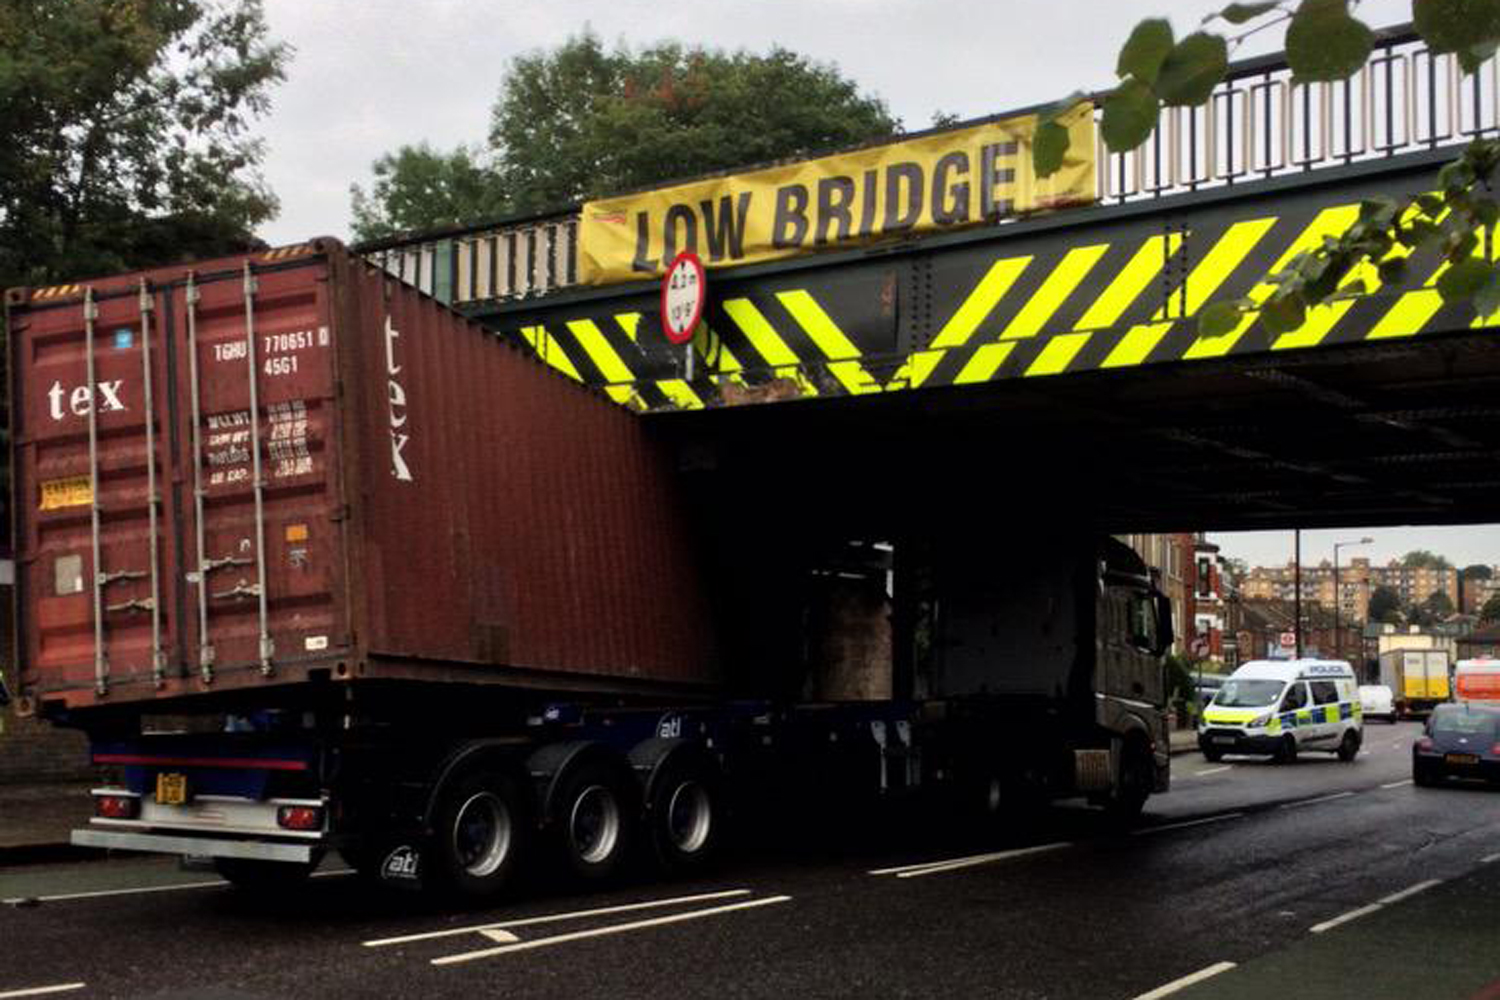 Lorry Strikes At Cursed Low Bridge In Tulse Hill Drop By